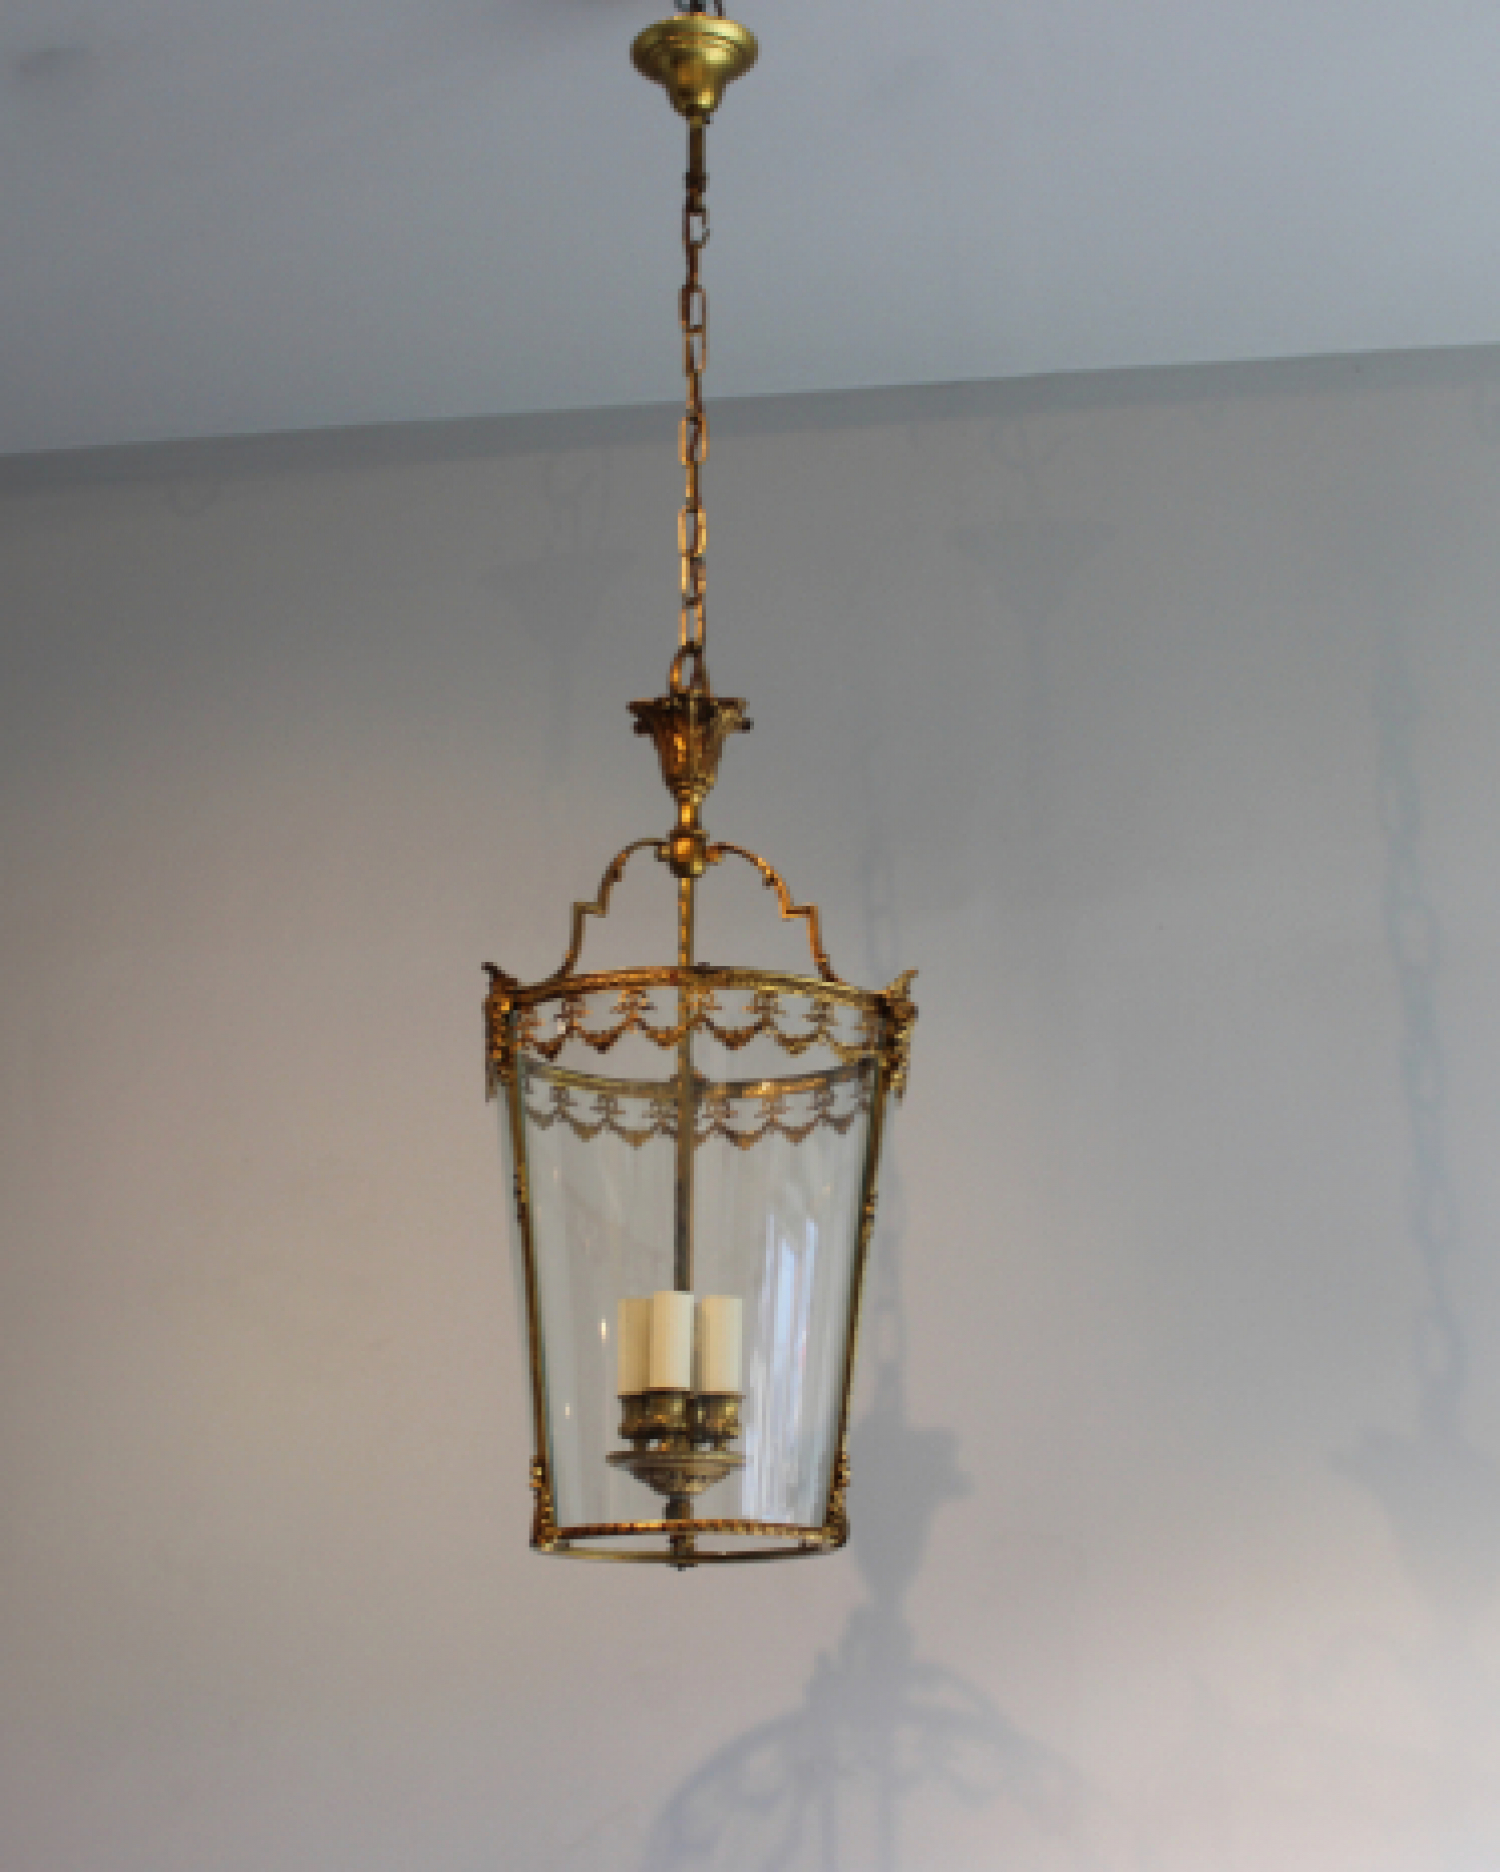 Antique Hall Lanterns  - Light up for Christmas - image 4